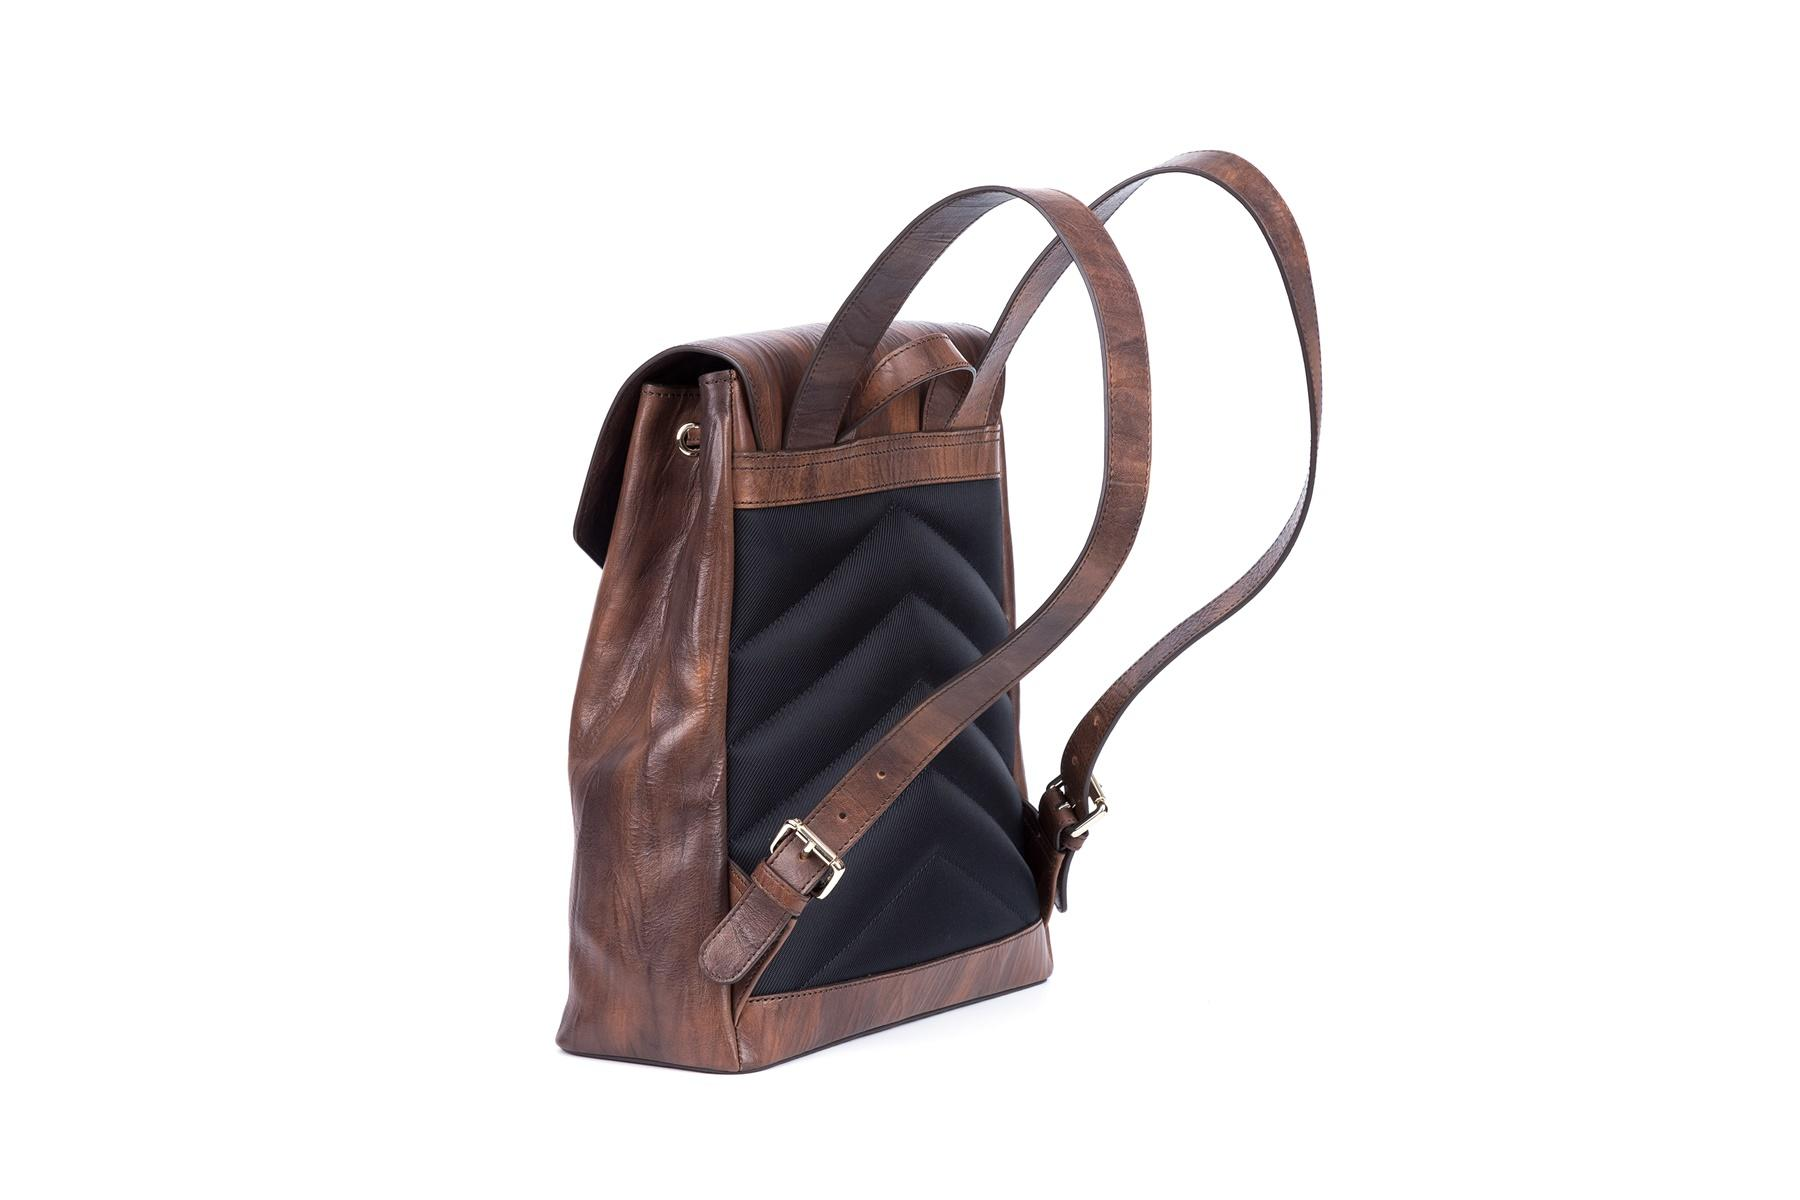 Backpack vegetable tanned leather 10 litres cover with rope lock